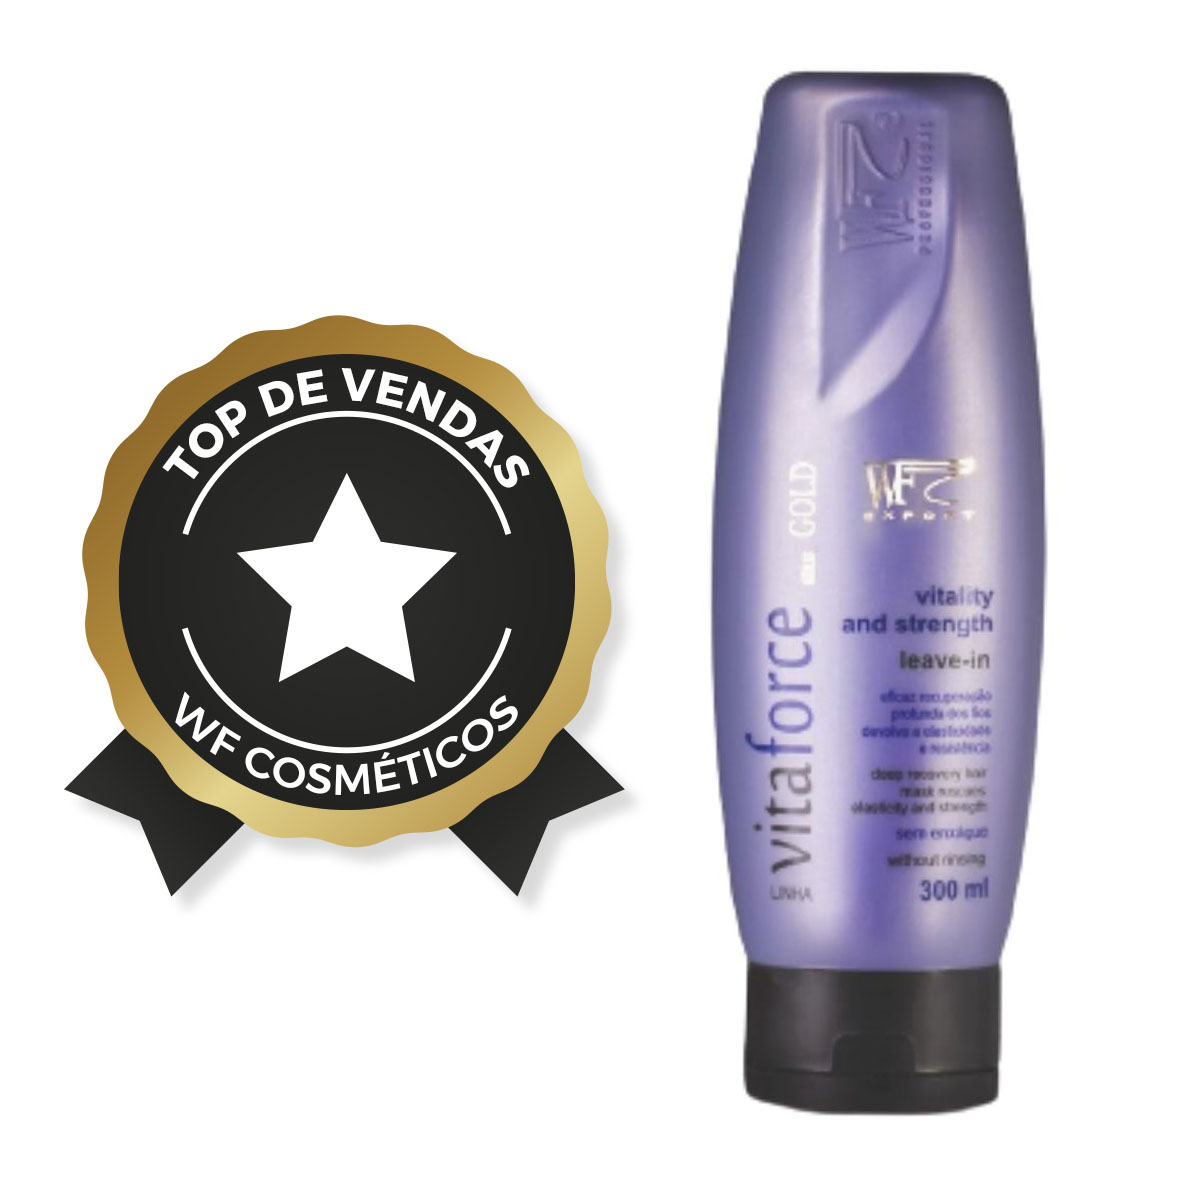 VITAFORCE - LEAVE-IN VITALITY AND STRENGTH WF COSMETICOS 300ML